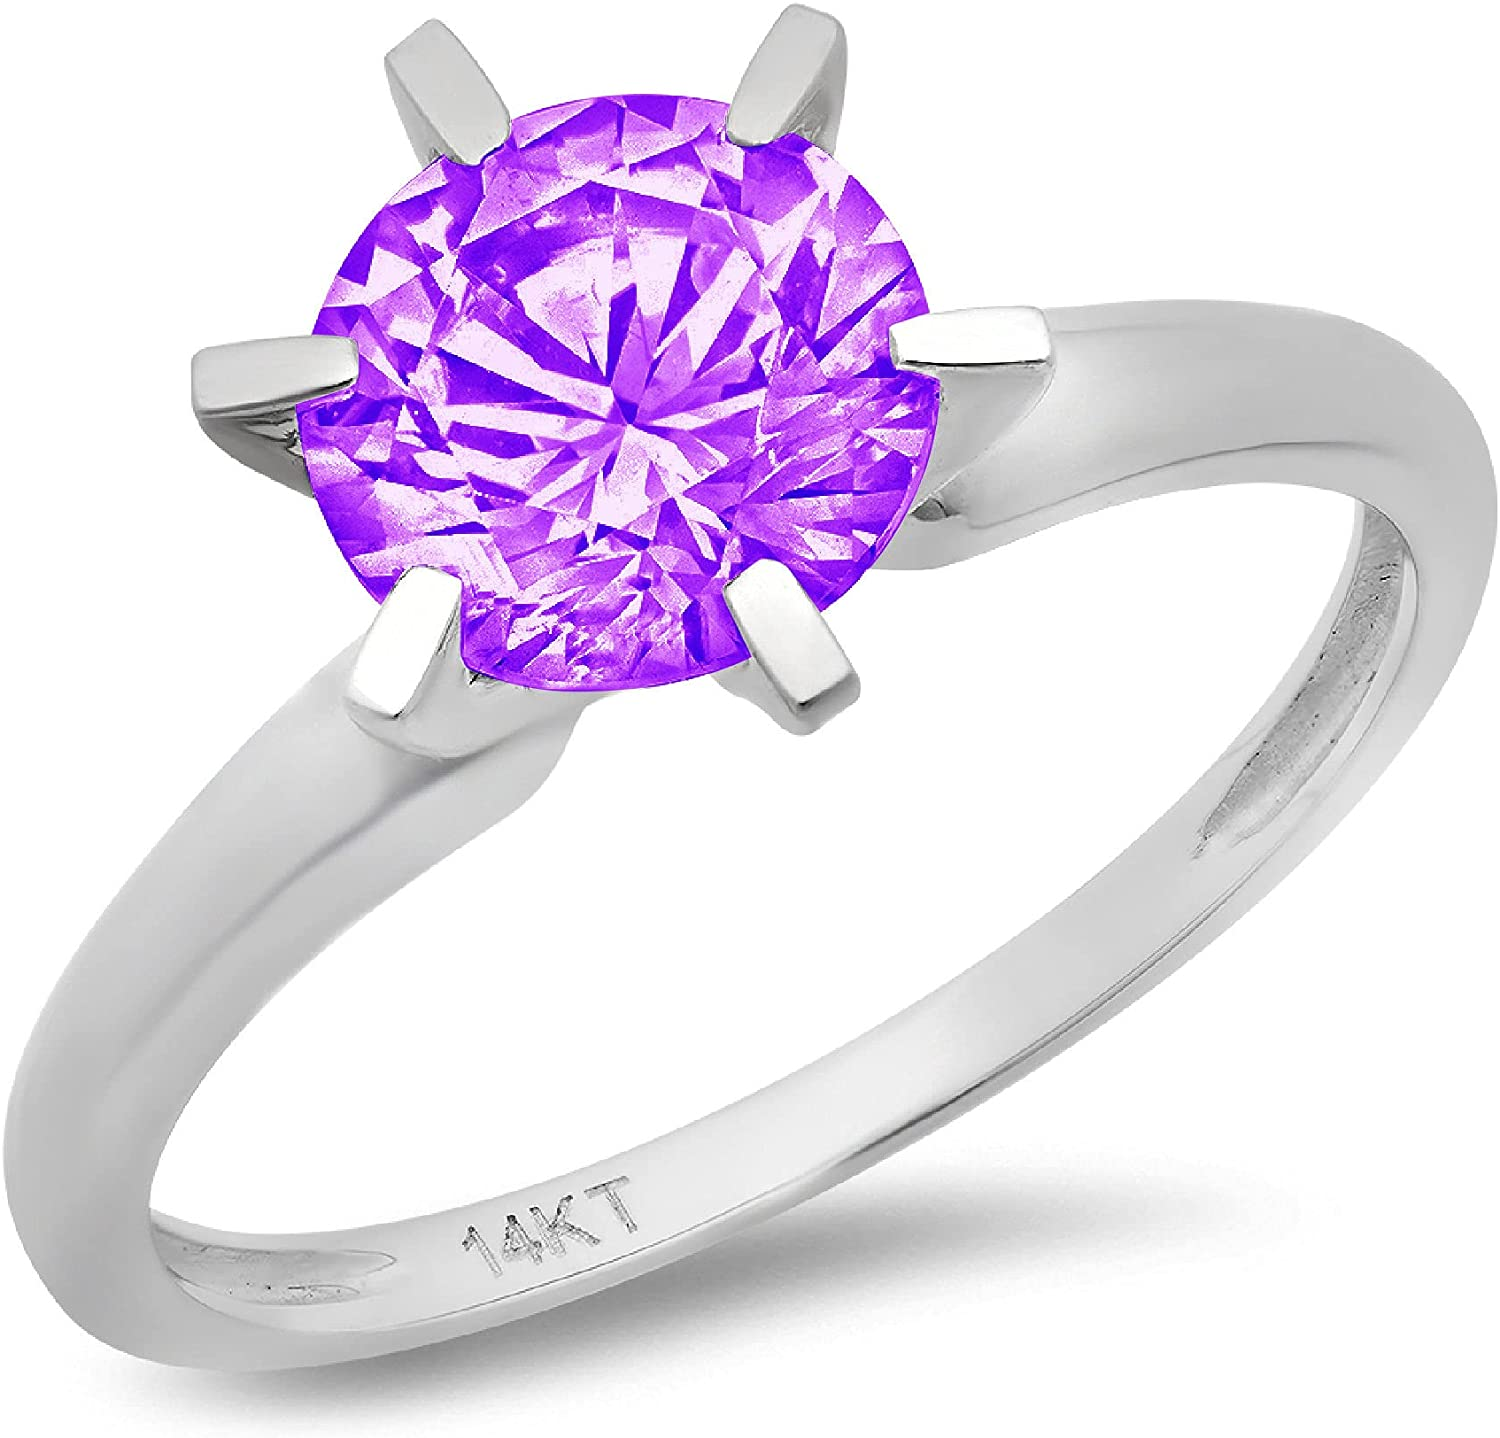 Clara Pucci 2.0 ct Brilliant Round Cut Solitaire Natural Purple Amethyst Gemstone 6-Prong Engagement Wedding Bridal Promise Anniversary Ring in Solid 18K White Gold for Women